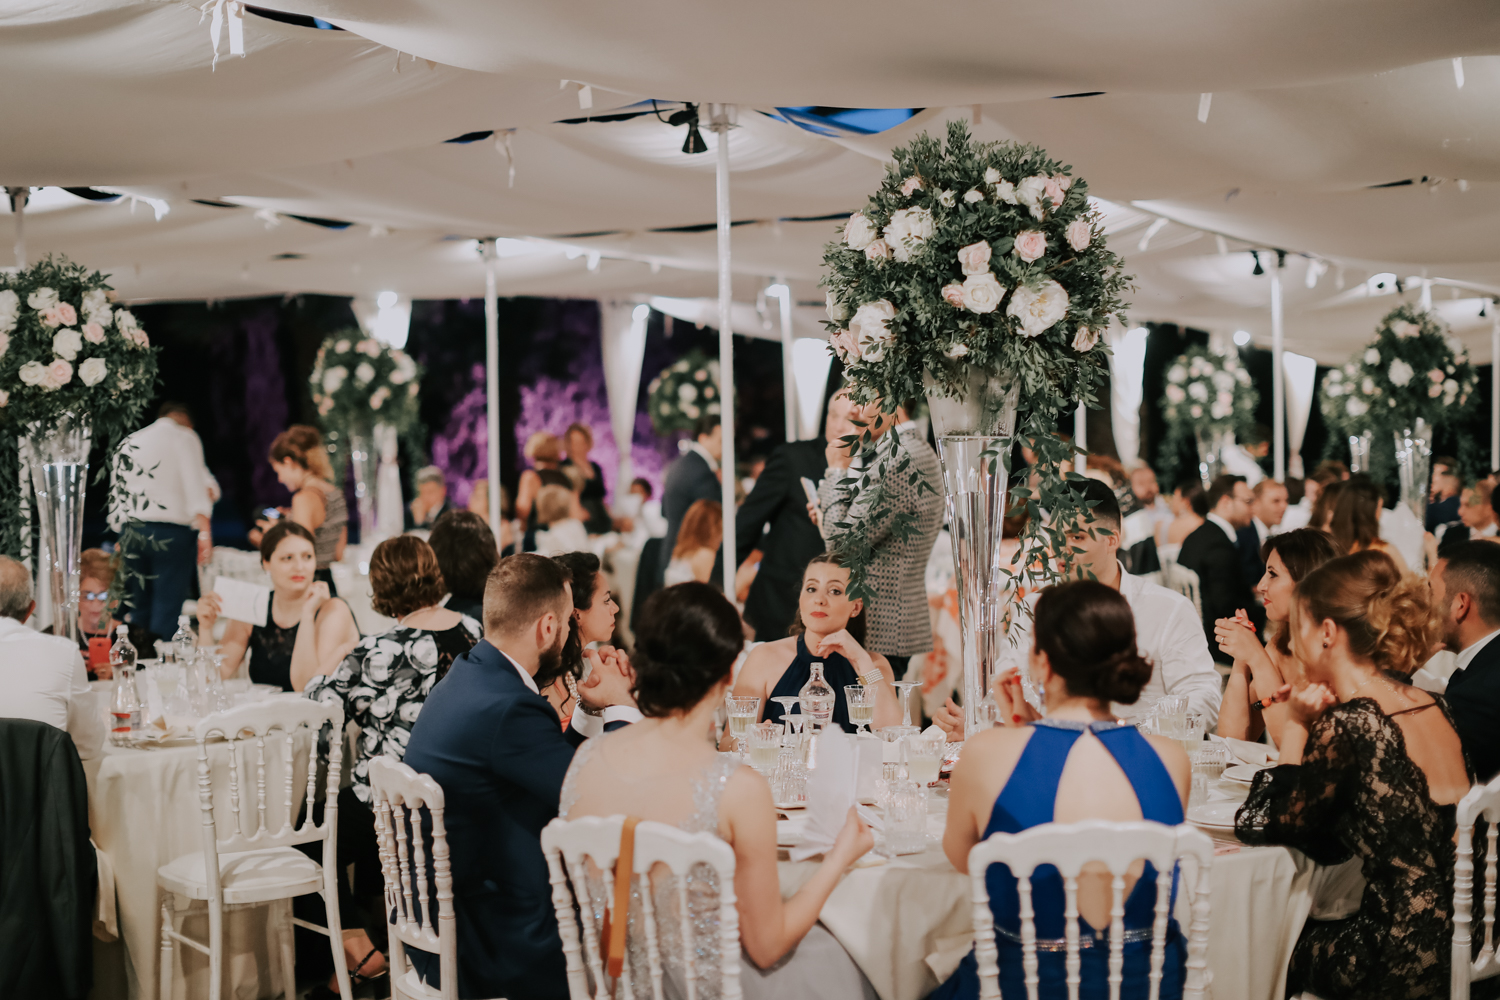 https://www.weddingamalfi.com/wp-content/uploads/Alessandro-and-Diego-wedding-table-decorations-and-happy-guests.jpg